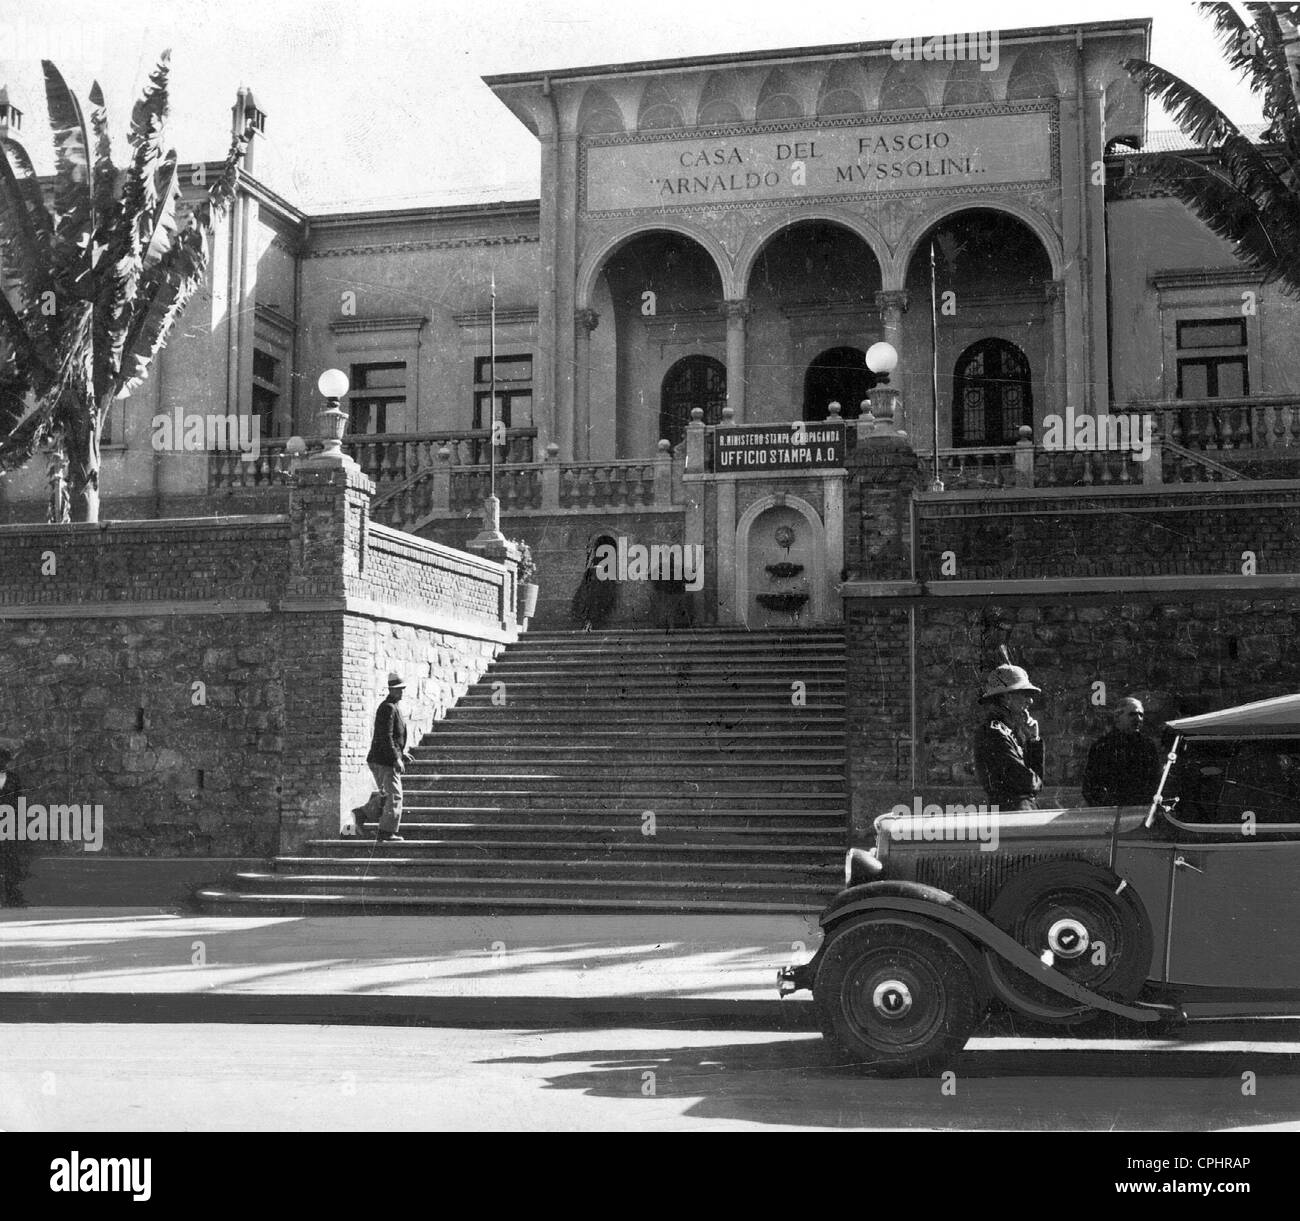 'Casa del Fascio' in Ethiopia in the 30's - Stock Image